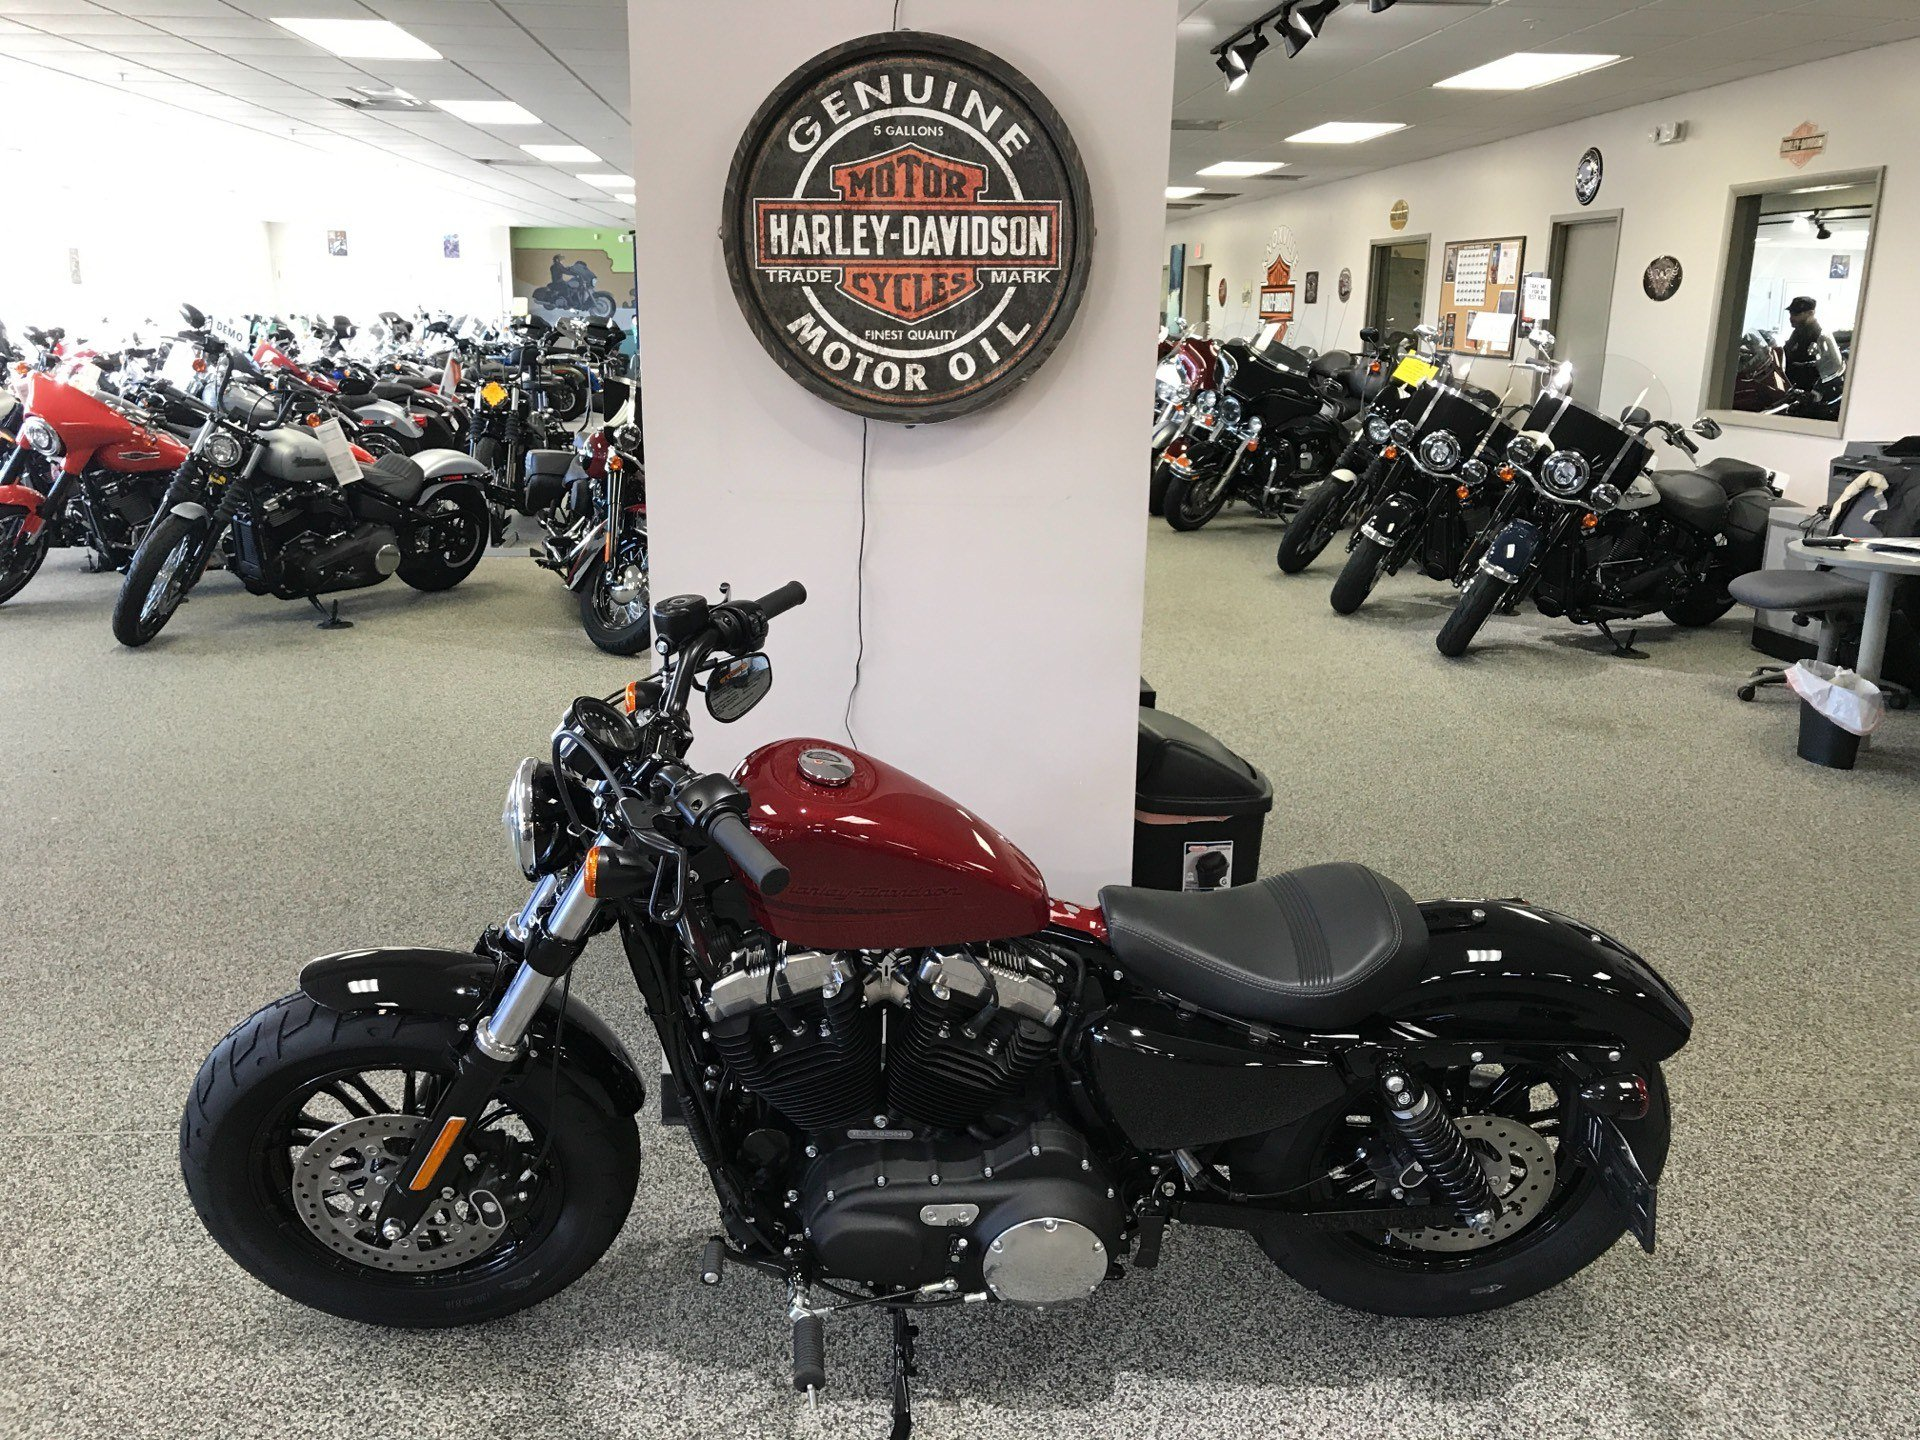 2020 Harley-Davidson FORTY-EIGHT SPORTSTER in Knoxville, Tennessee - Photo 15